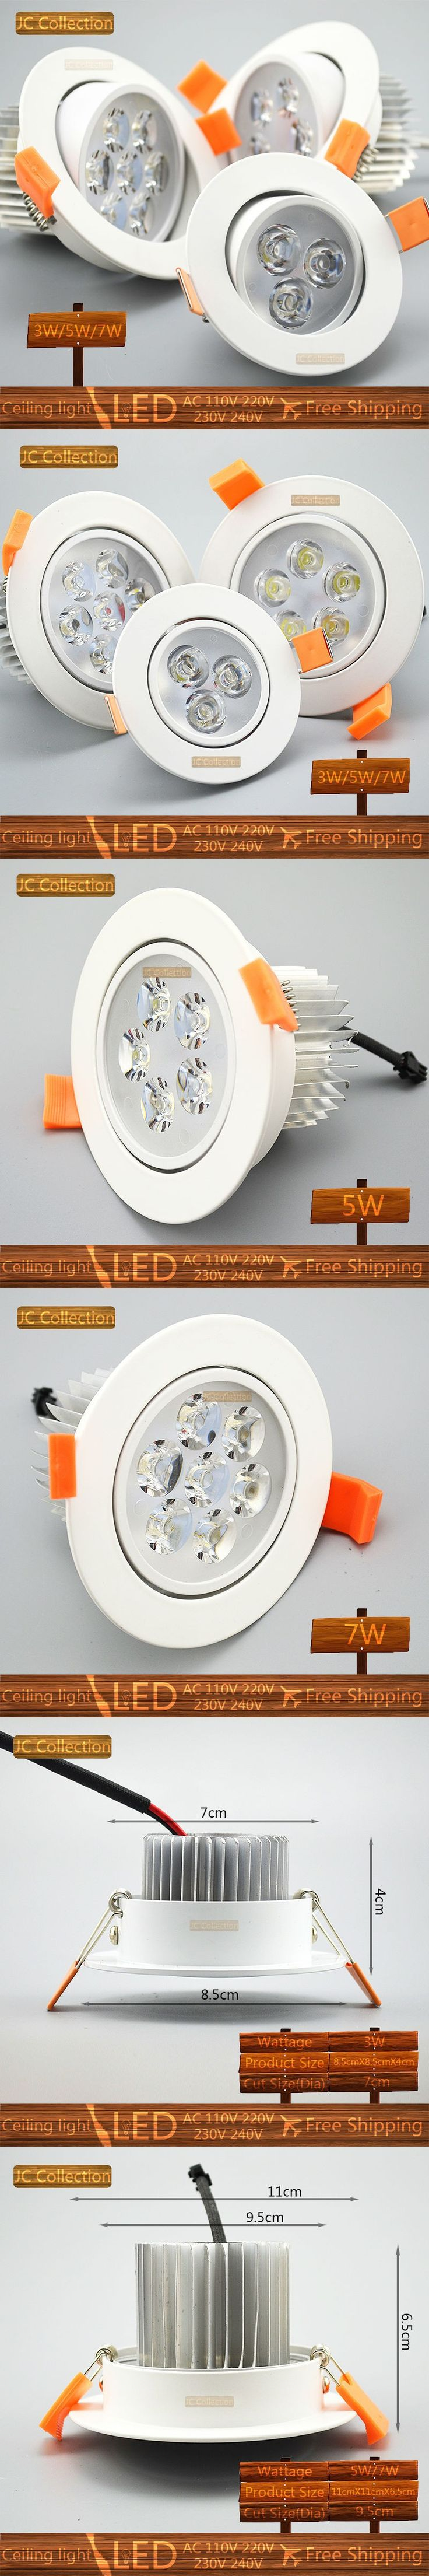 fbe0c8b53ccebd880581cc6ff3b617ef--led-spotlight-bulbs-led-ceiling-lights Wunderbar Led Mr11 Gu4 Warmweiss Dekorationen